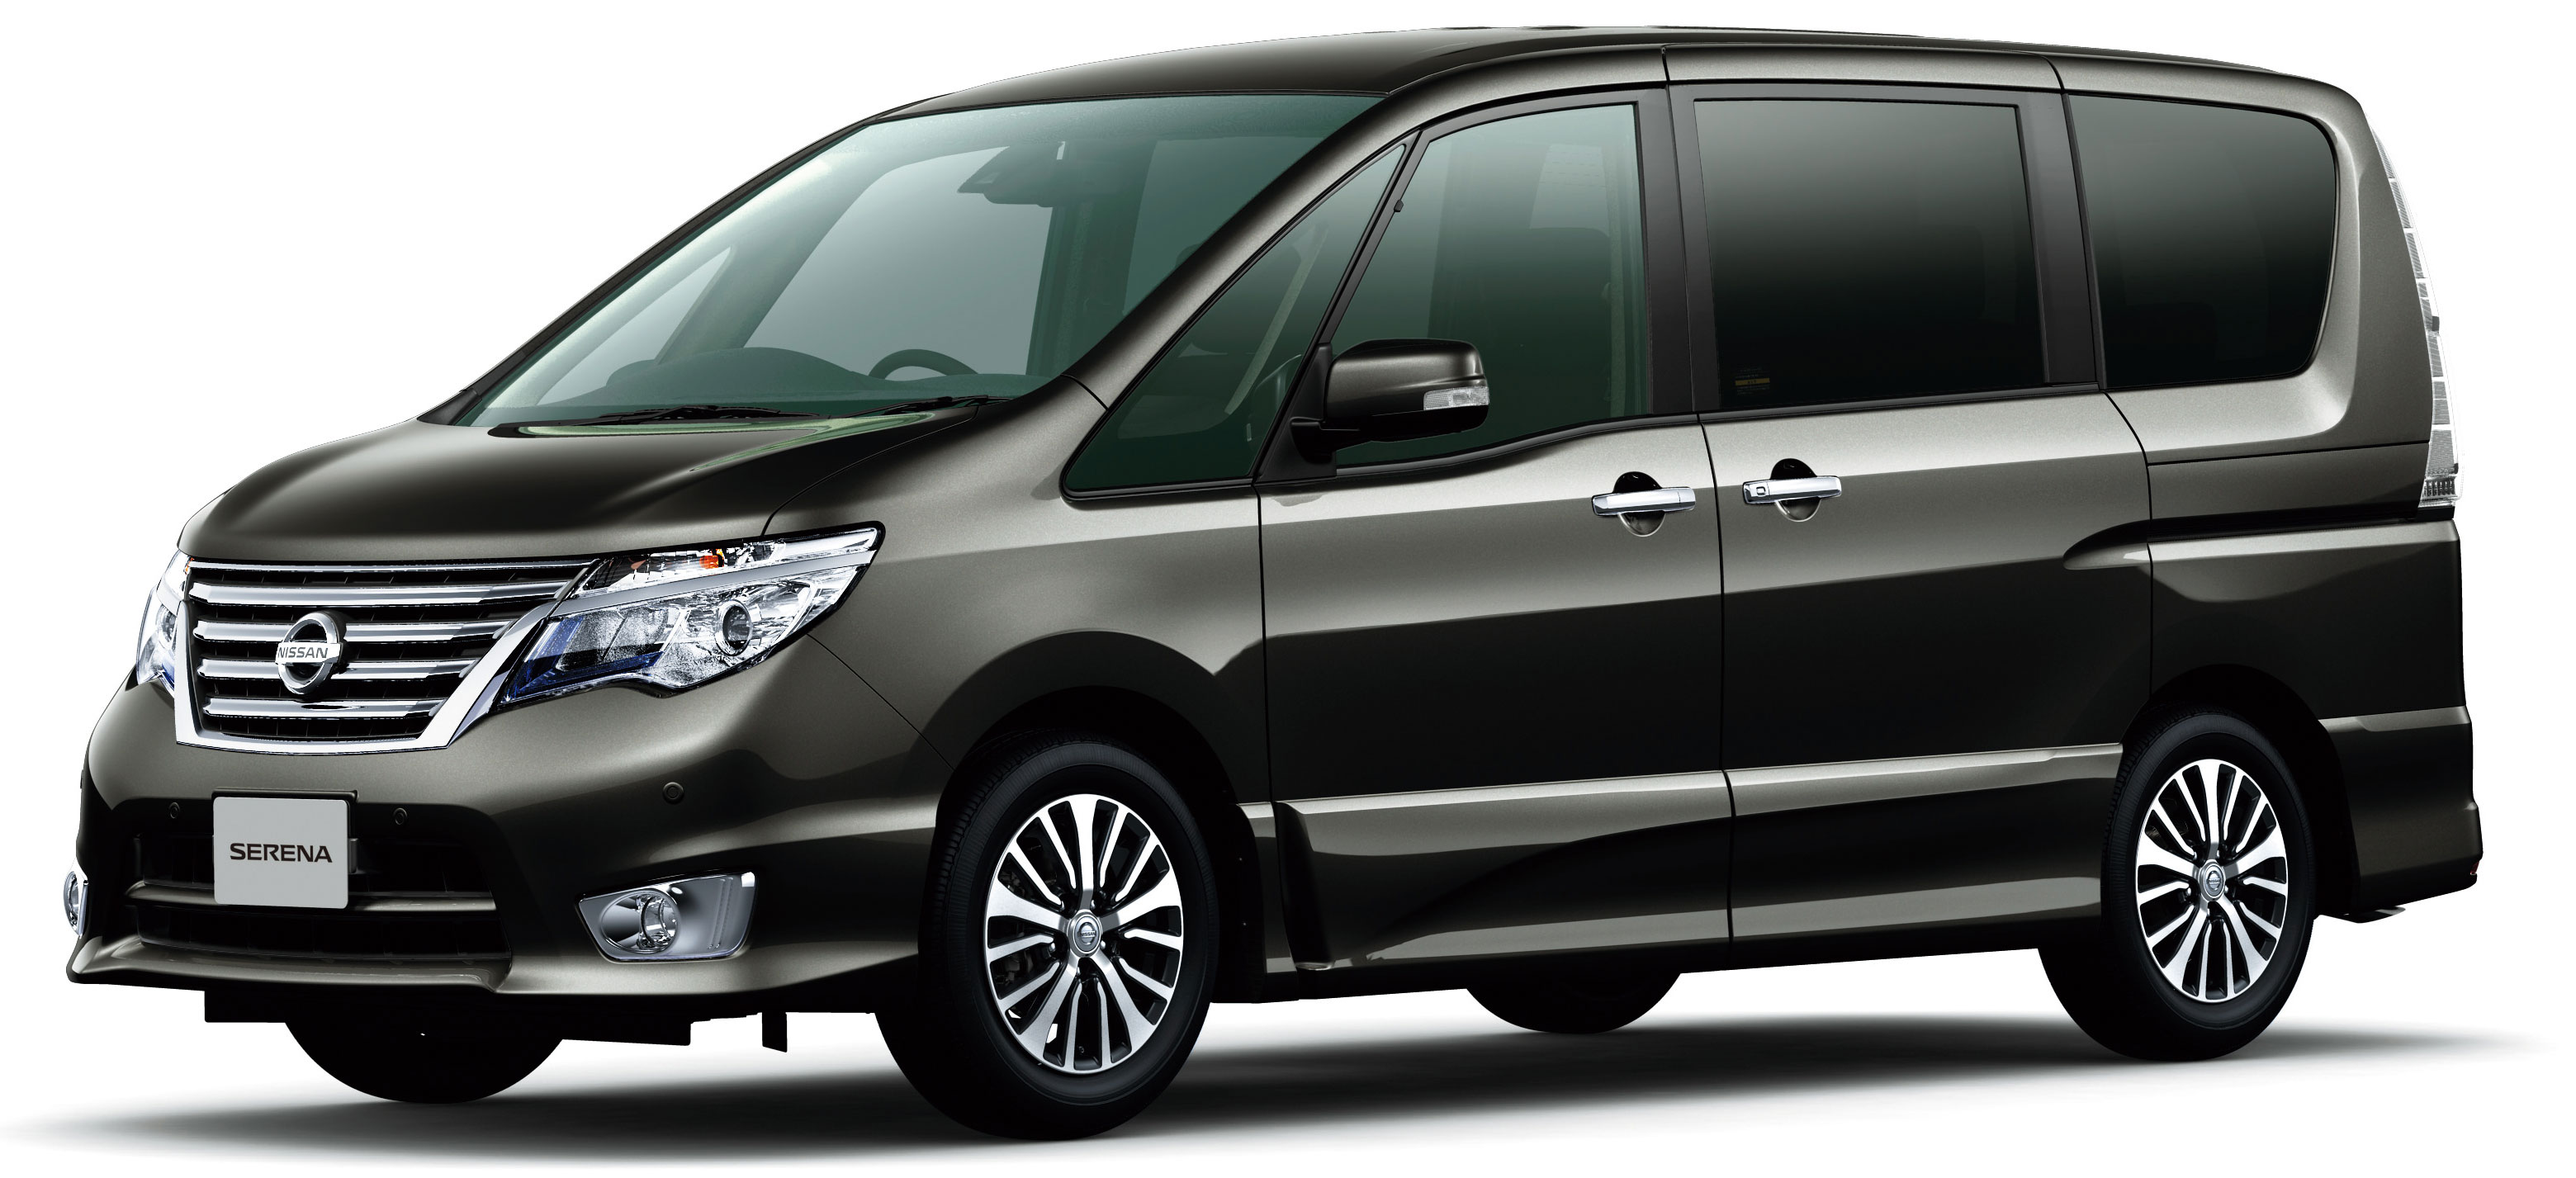 Nissan Serena S-Hybrid facelift unveiled at Tokyo 2013